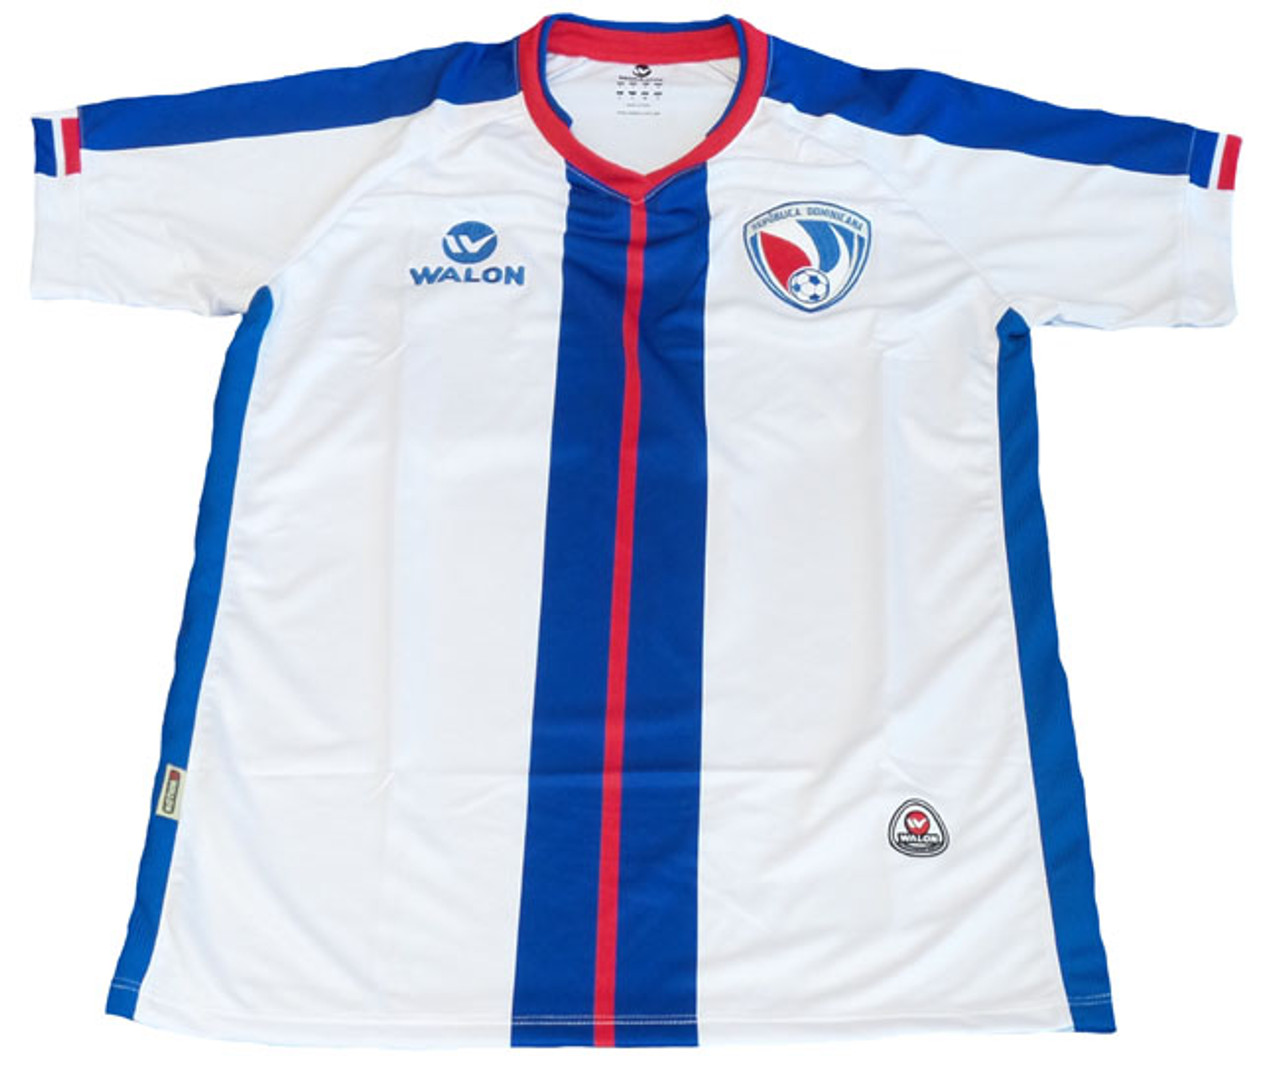 the best attitude b6bb0 6b01a WALON DOMINICAN REPUBLIC 2016 AWAY JERSEY